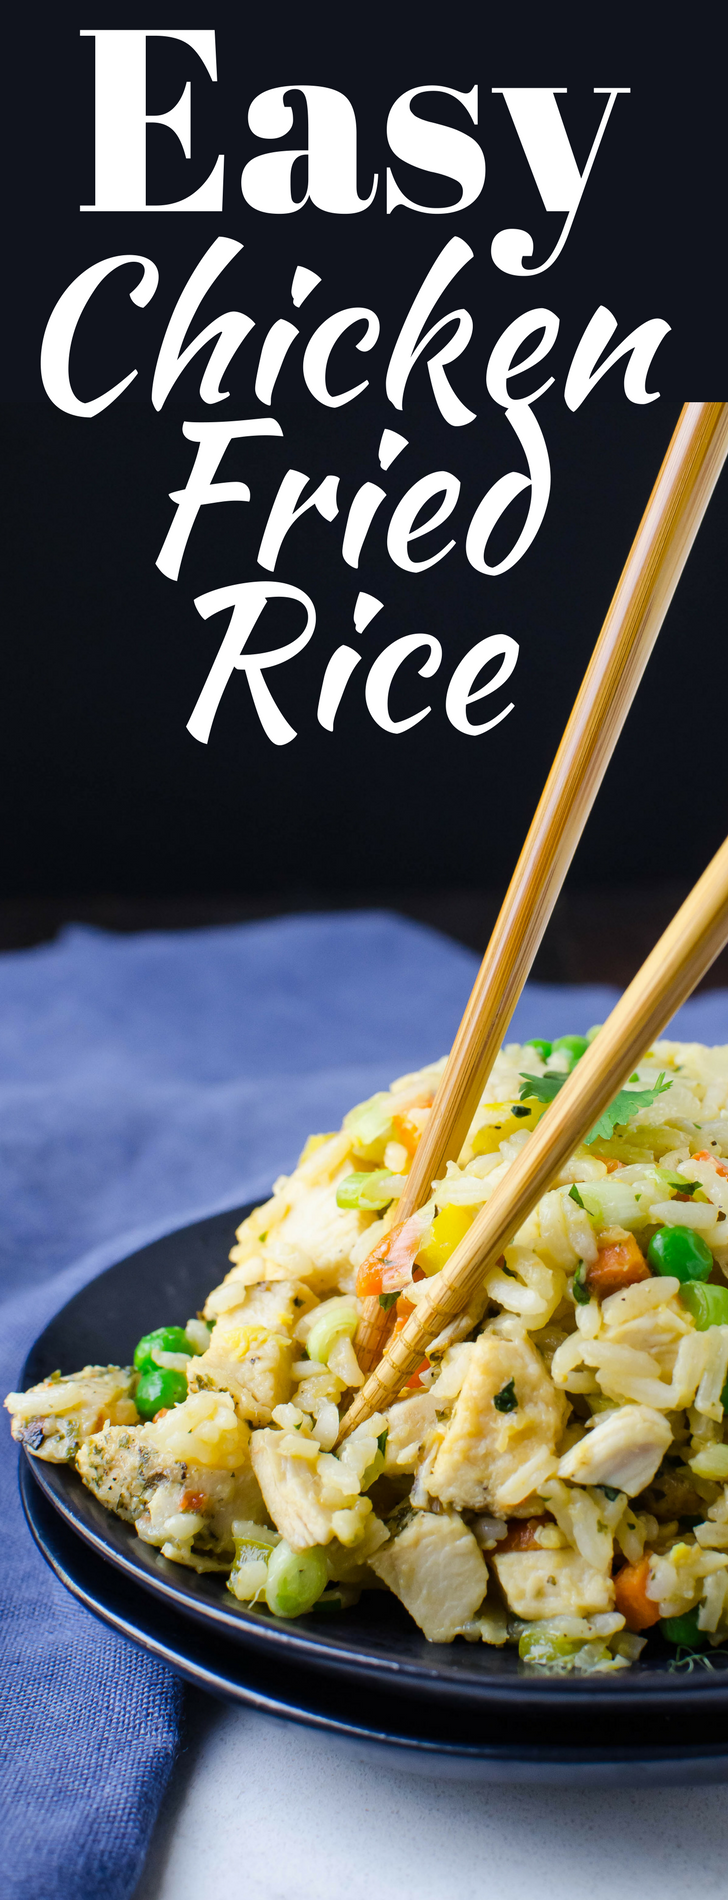 This easy fried rice recipe uses up your leftovers in a quick, tasty 20-minute one-pan dinner!  Easy Chicken Fried Rice is a weeknight favorite!